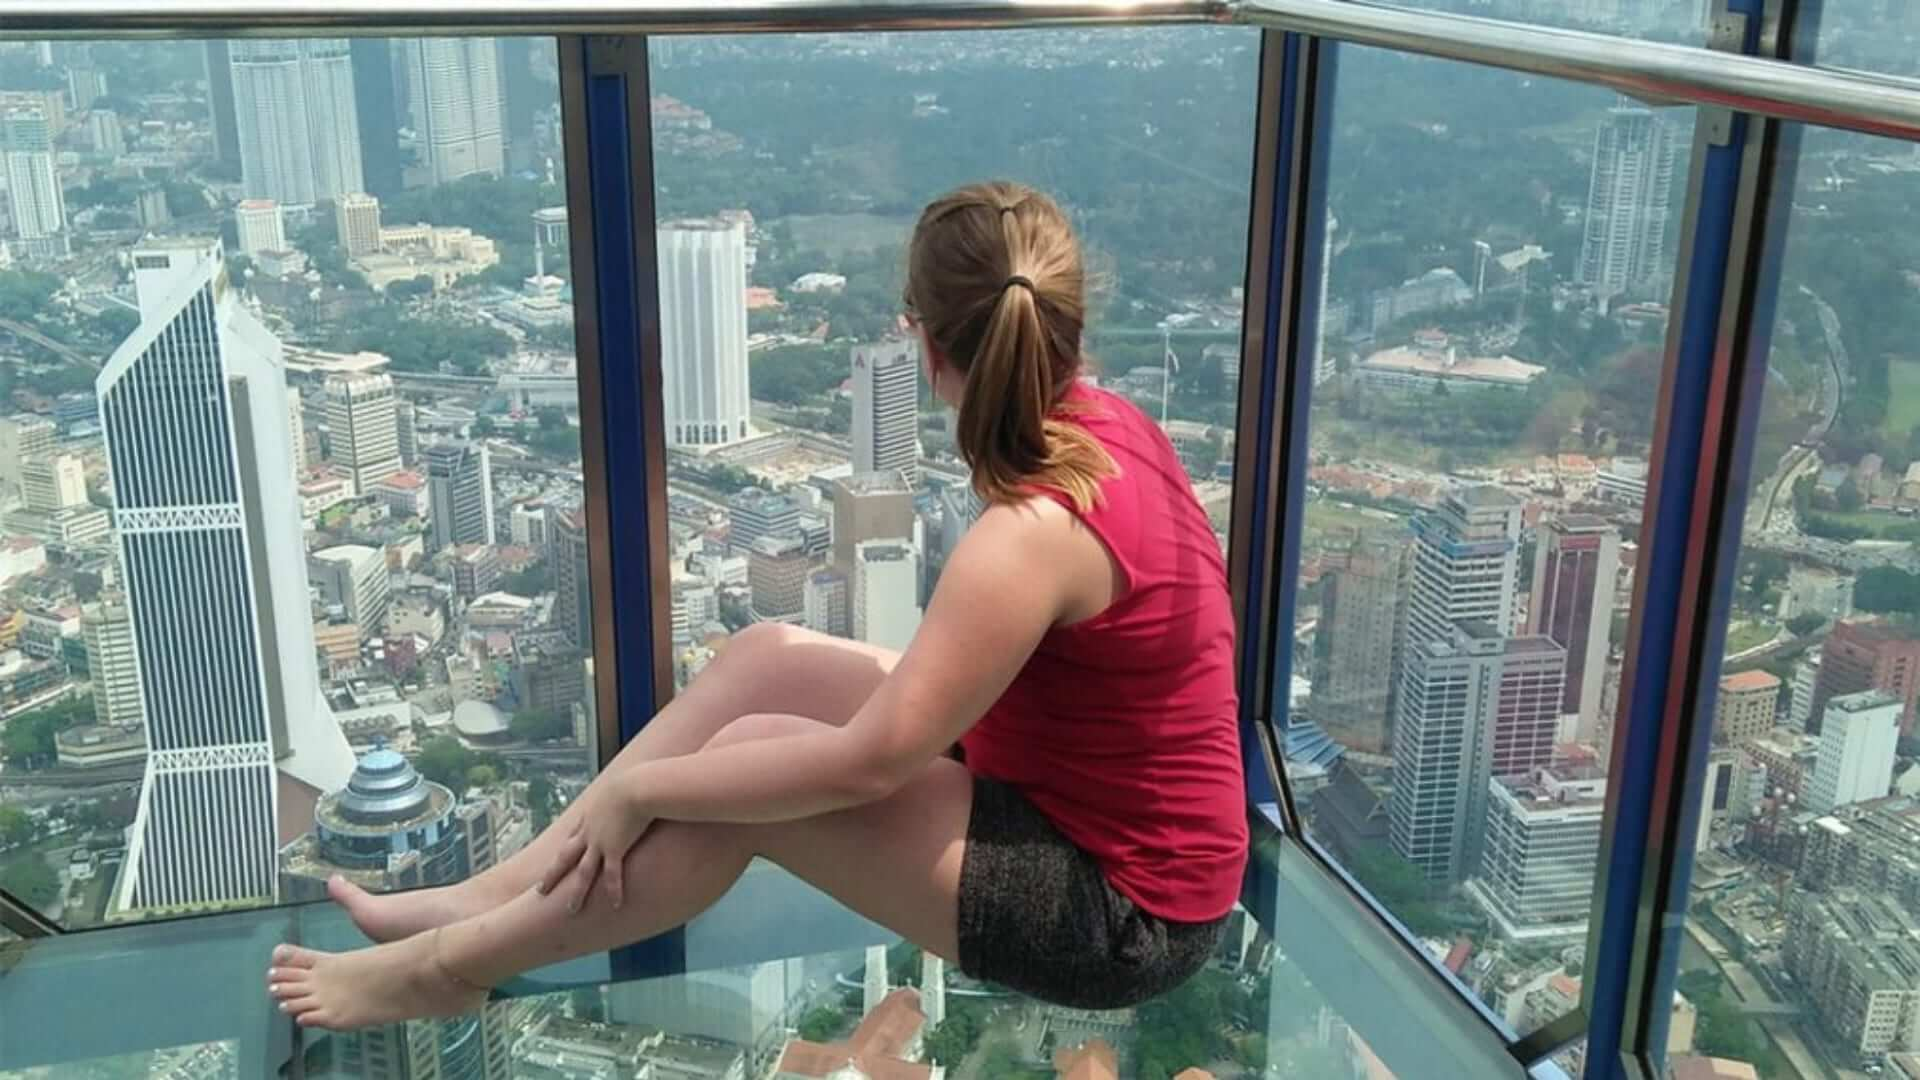 A girl wearing a red top is sitting in a high tower made of glass and looking over the city in Kuala Lumpur.